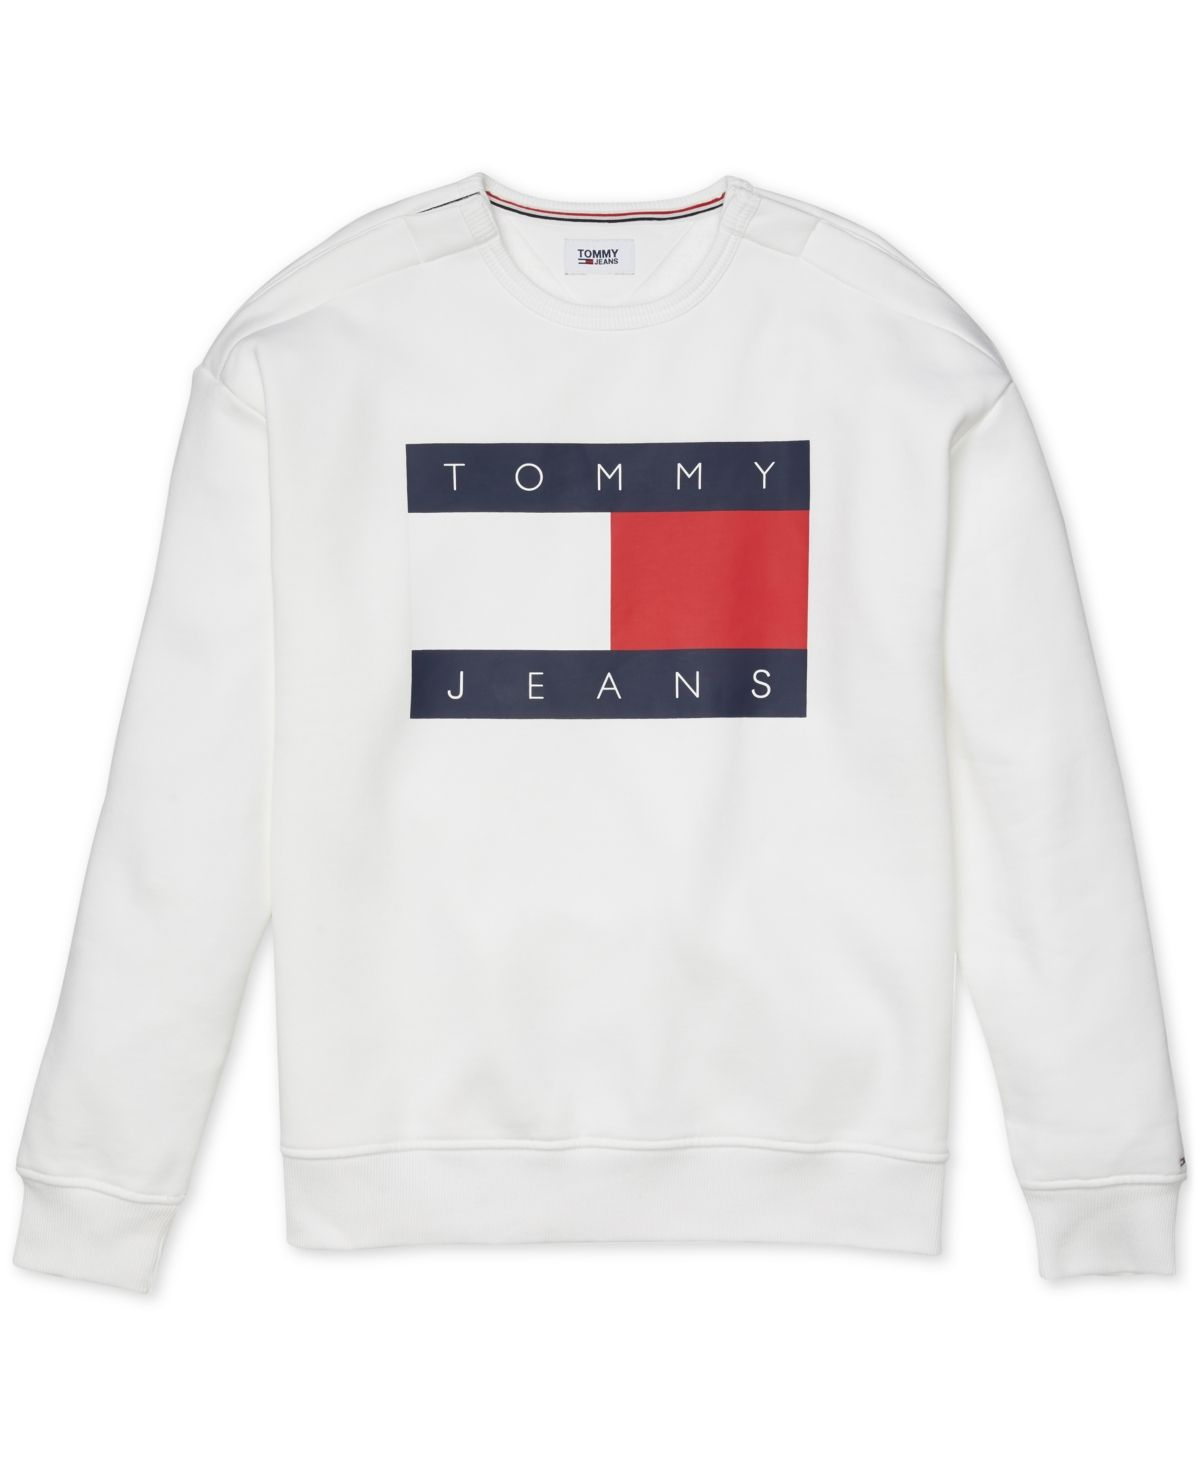 Tommy Hilfiger Adaptive Men S Tommy Jeans Lucca Sweatshirt Bright White Sweatshirts Tommy Jeans Tommy [ 1467 x 1200 Pixel ]